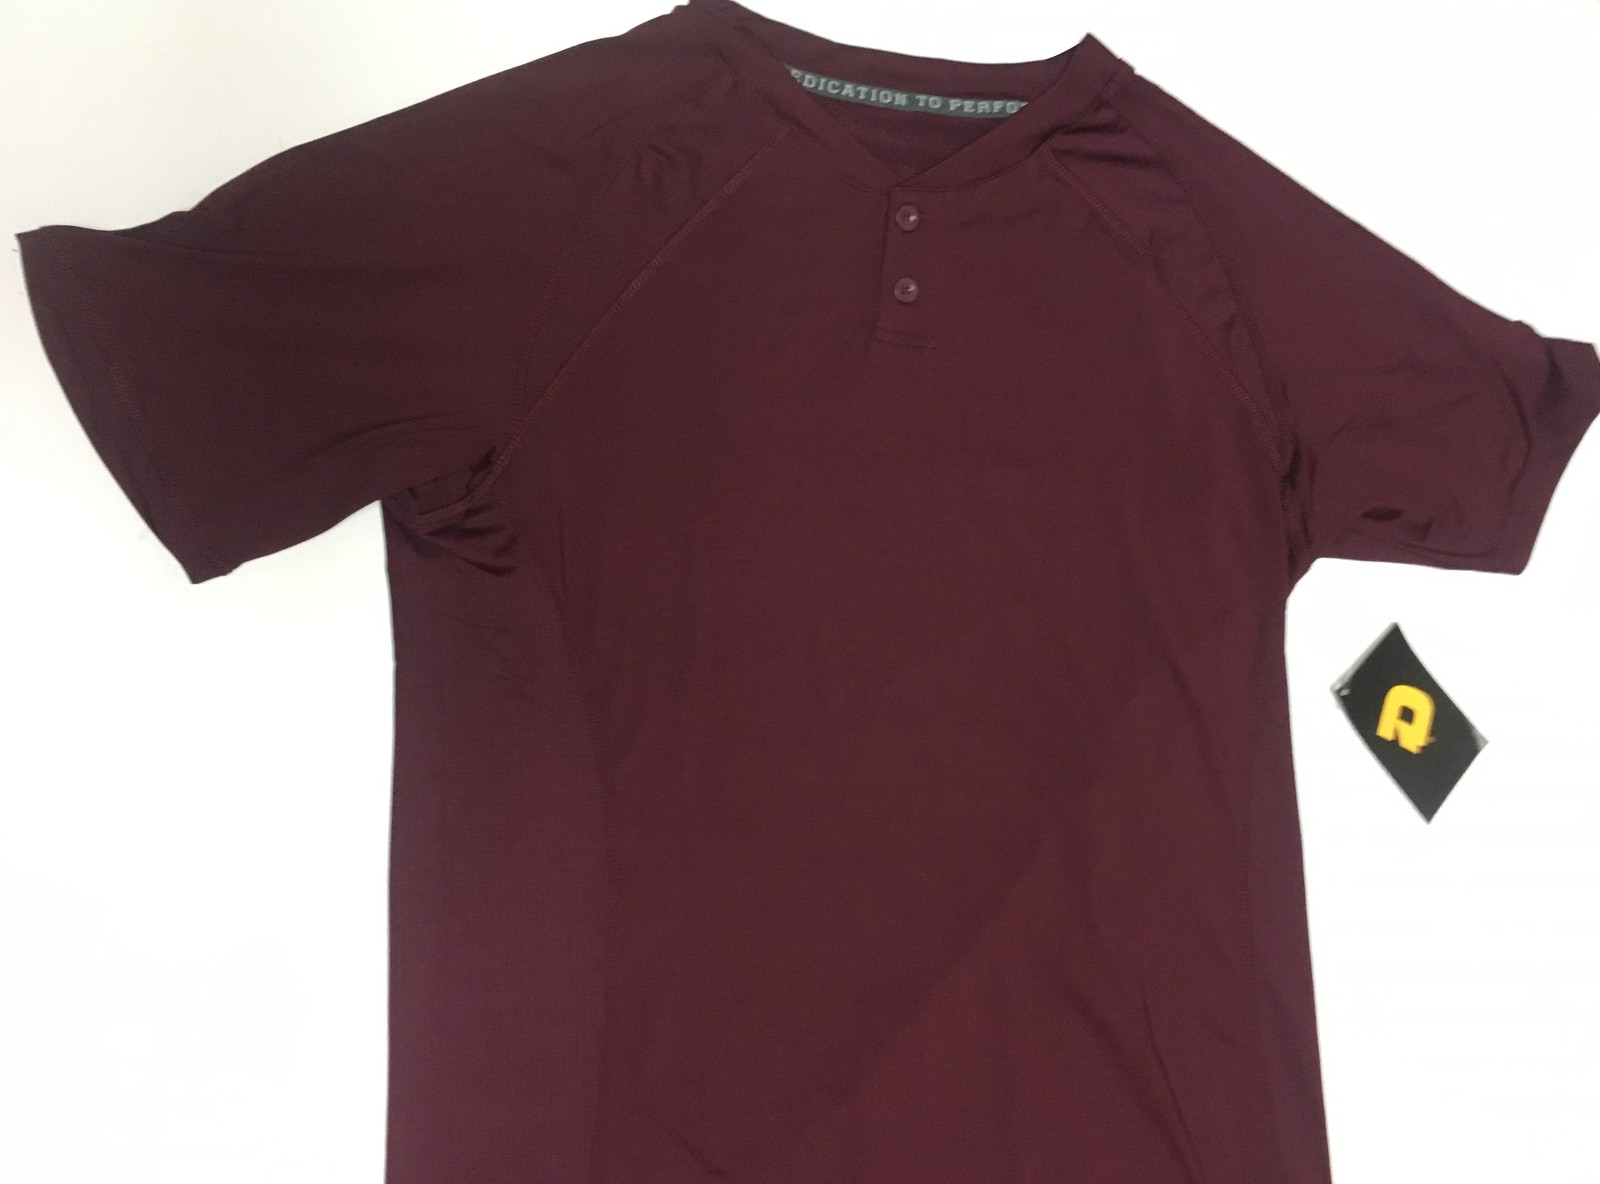 DeMarini Sports Comotion Performance Shirt Men's Sz S Maroon